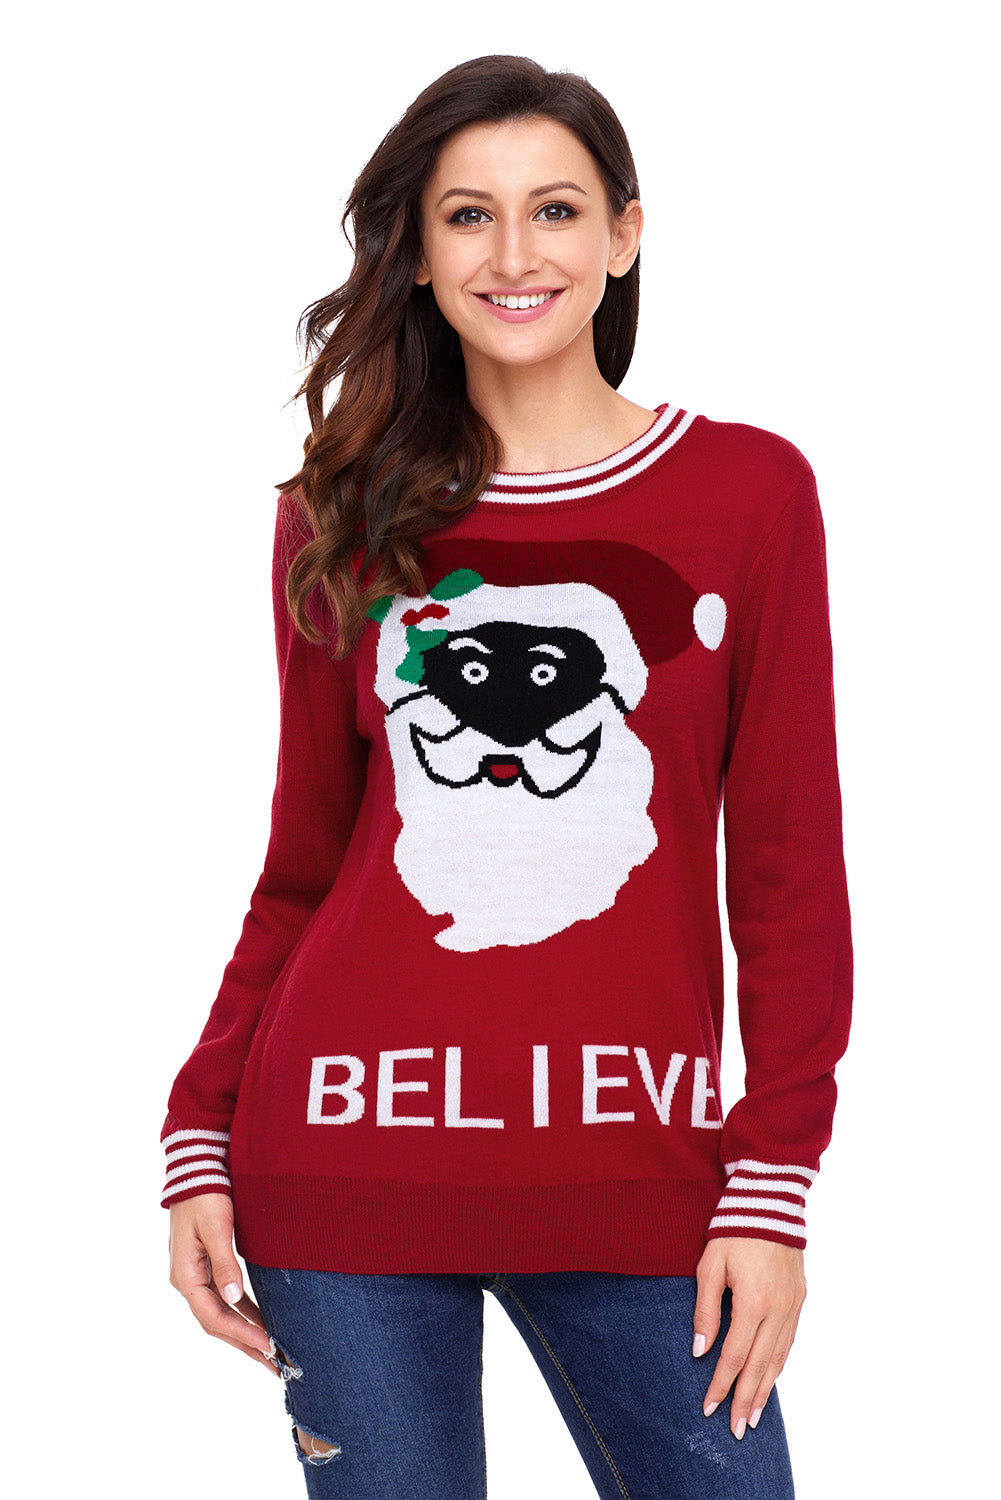 Chicloth Black Santa Christmas Sweater In Red - L / Red